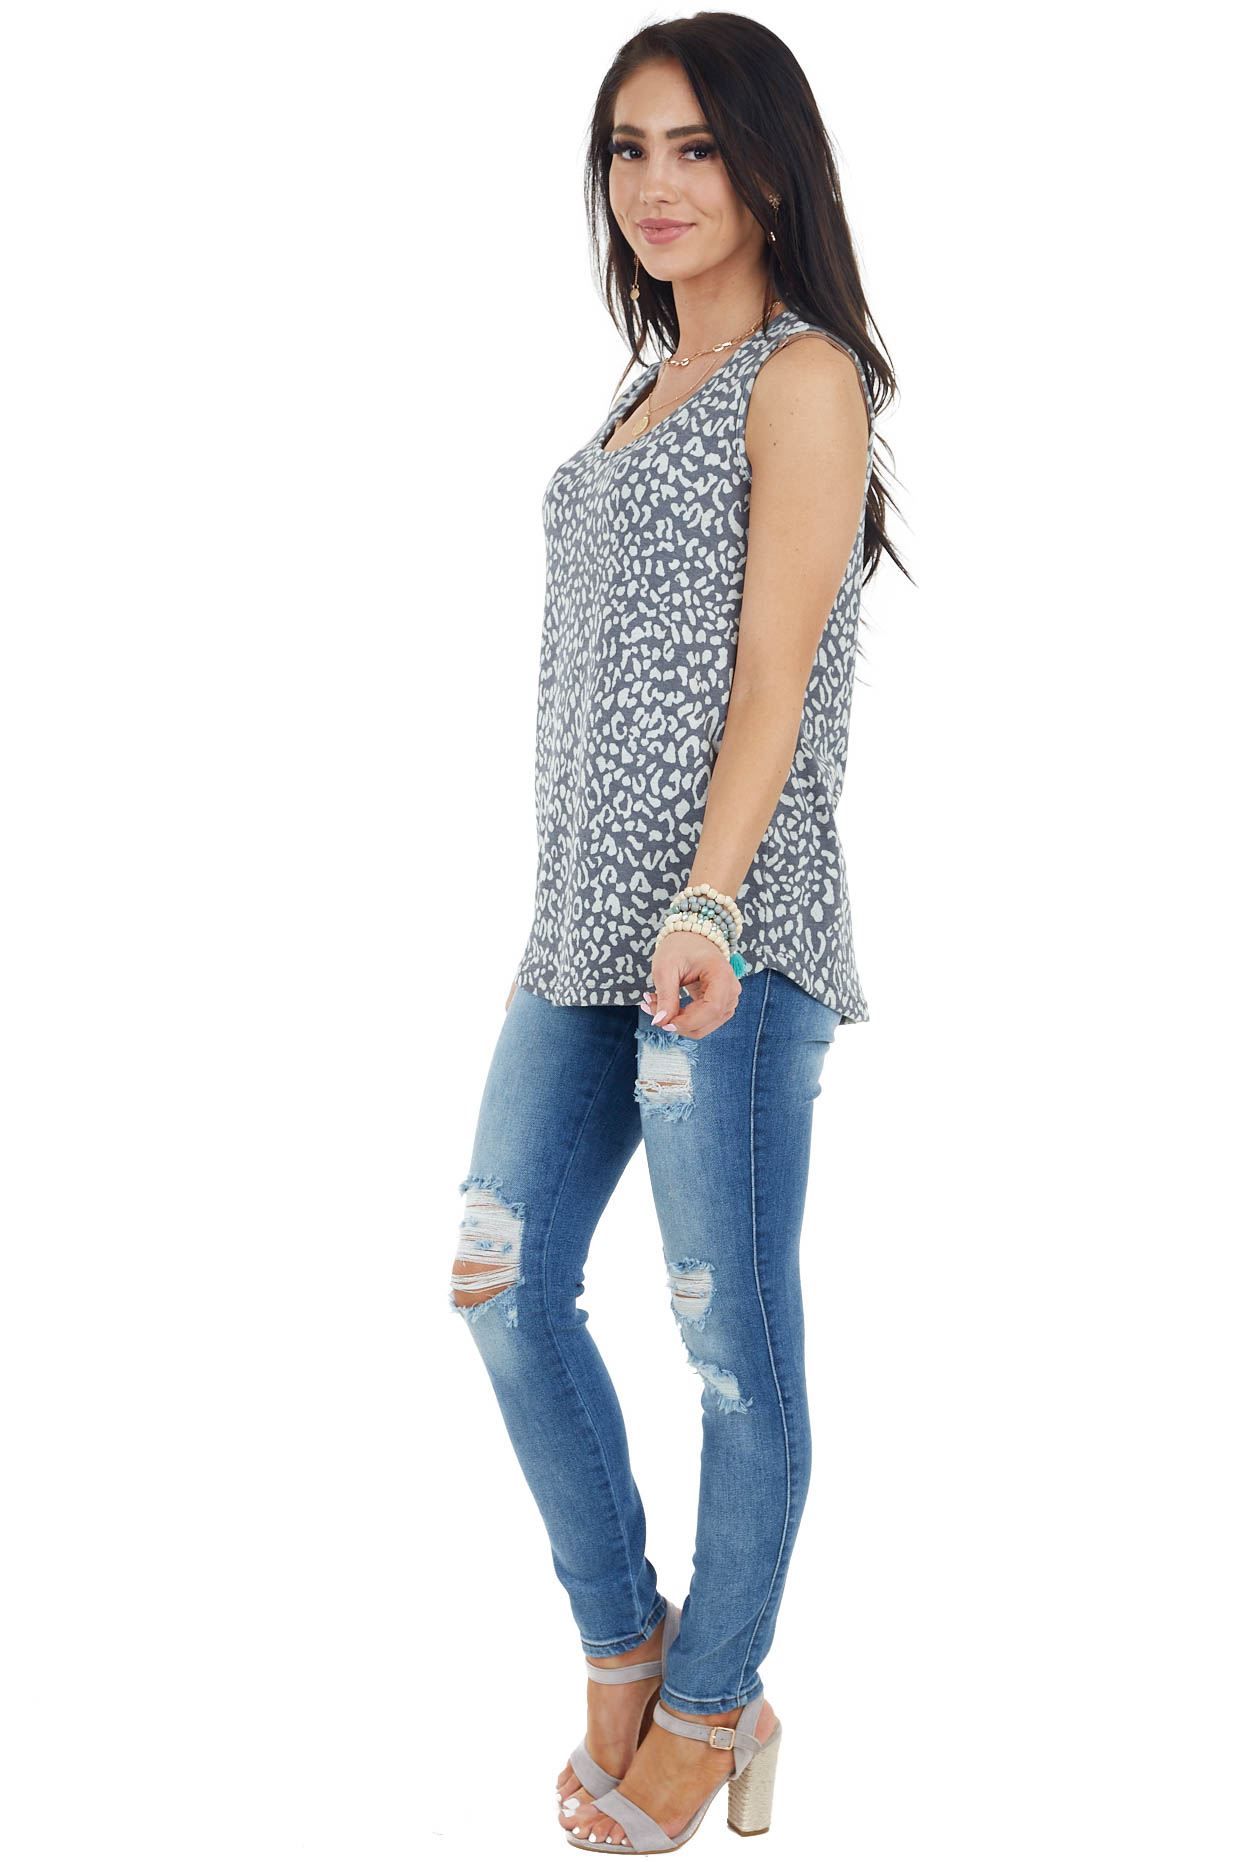 Charcoal and Cream Leopard Print Sleeveless Knit Top